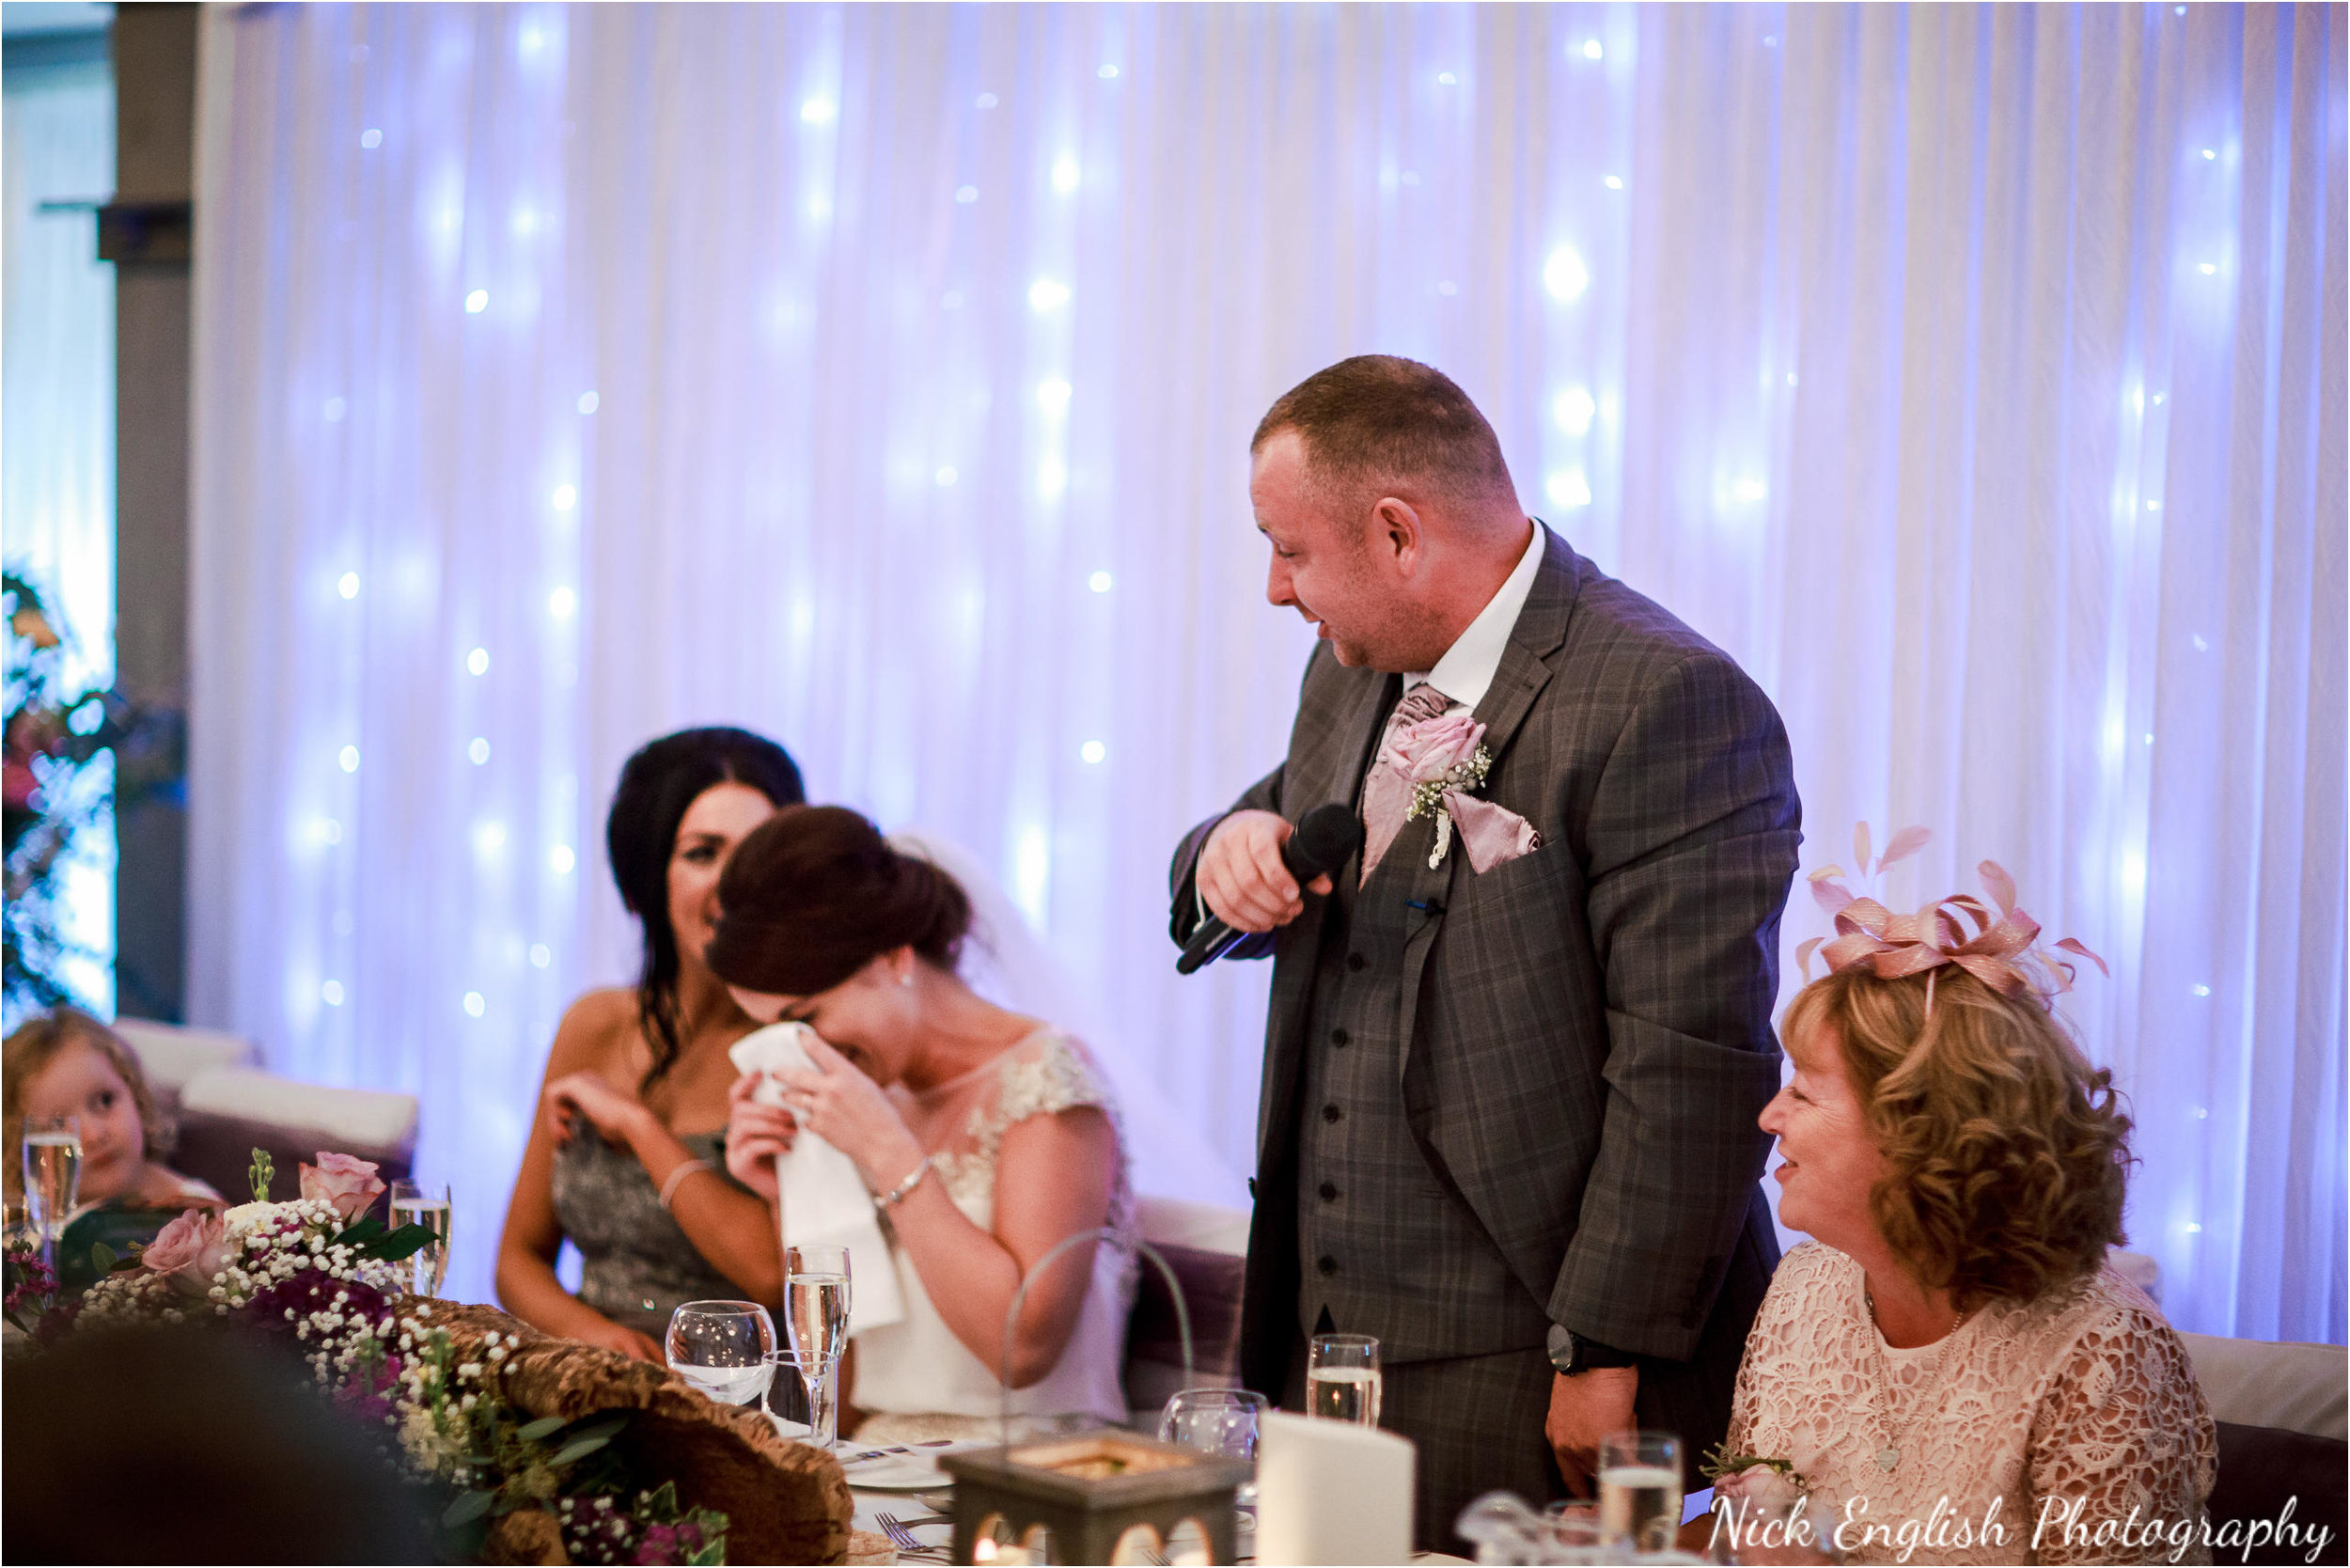 Stacey-Ash-Wedding-Photographs-Stanley-House-Preston-Lancashire-161.jpg